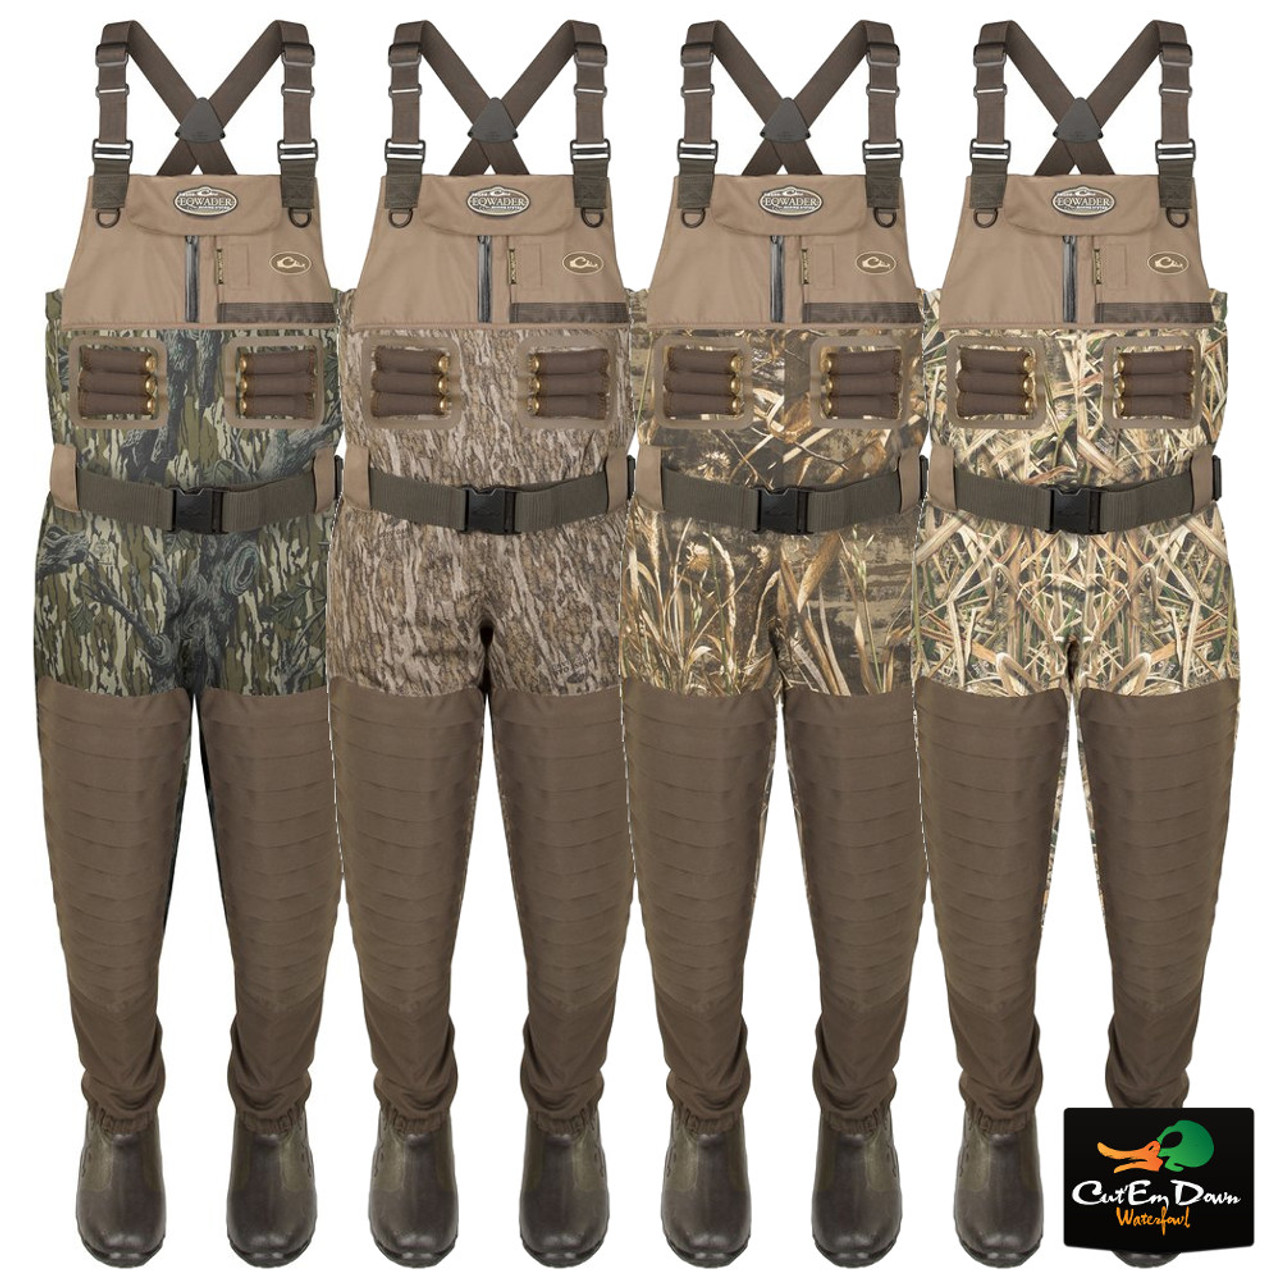 caefb4c1f60a4e Drake Waterfowl Guardian Elite Insulated Breathable Chest Waders